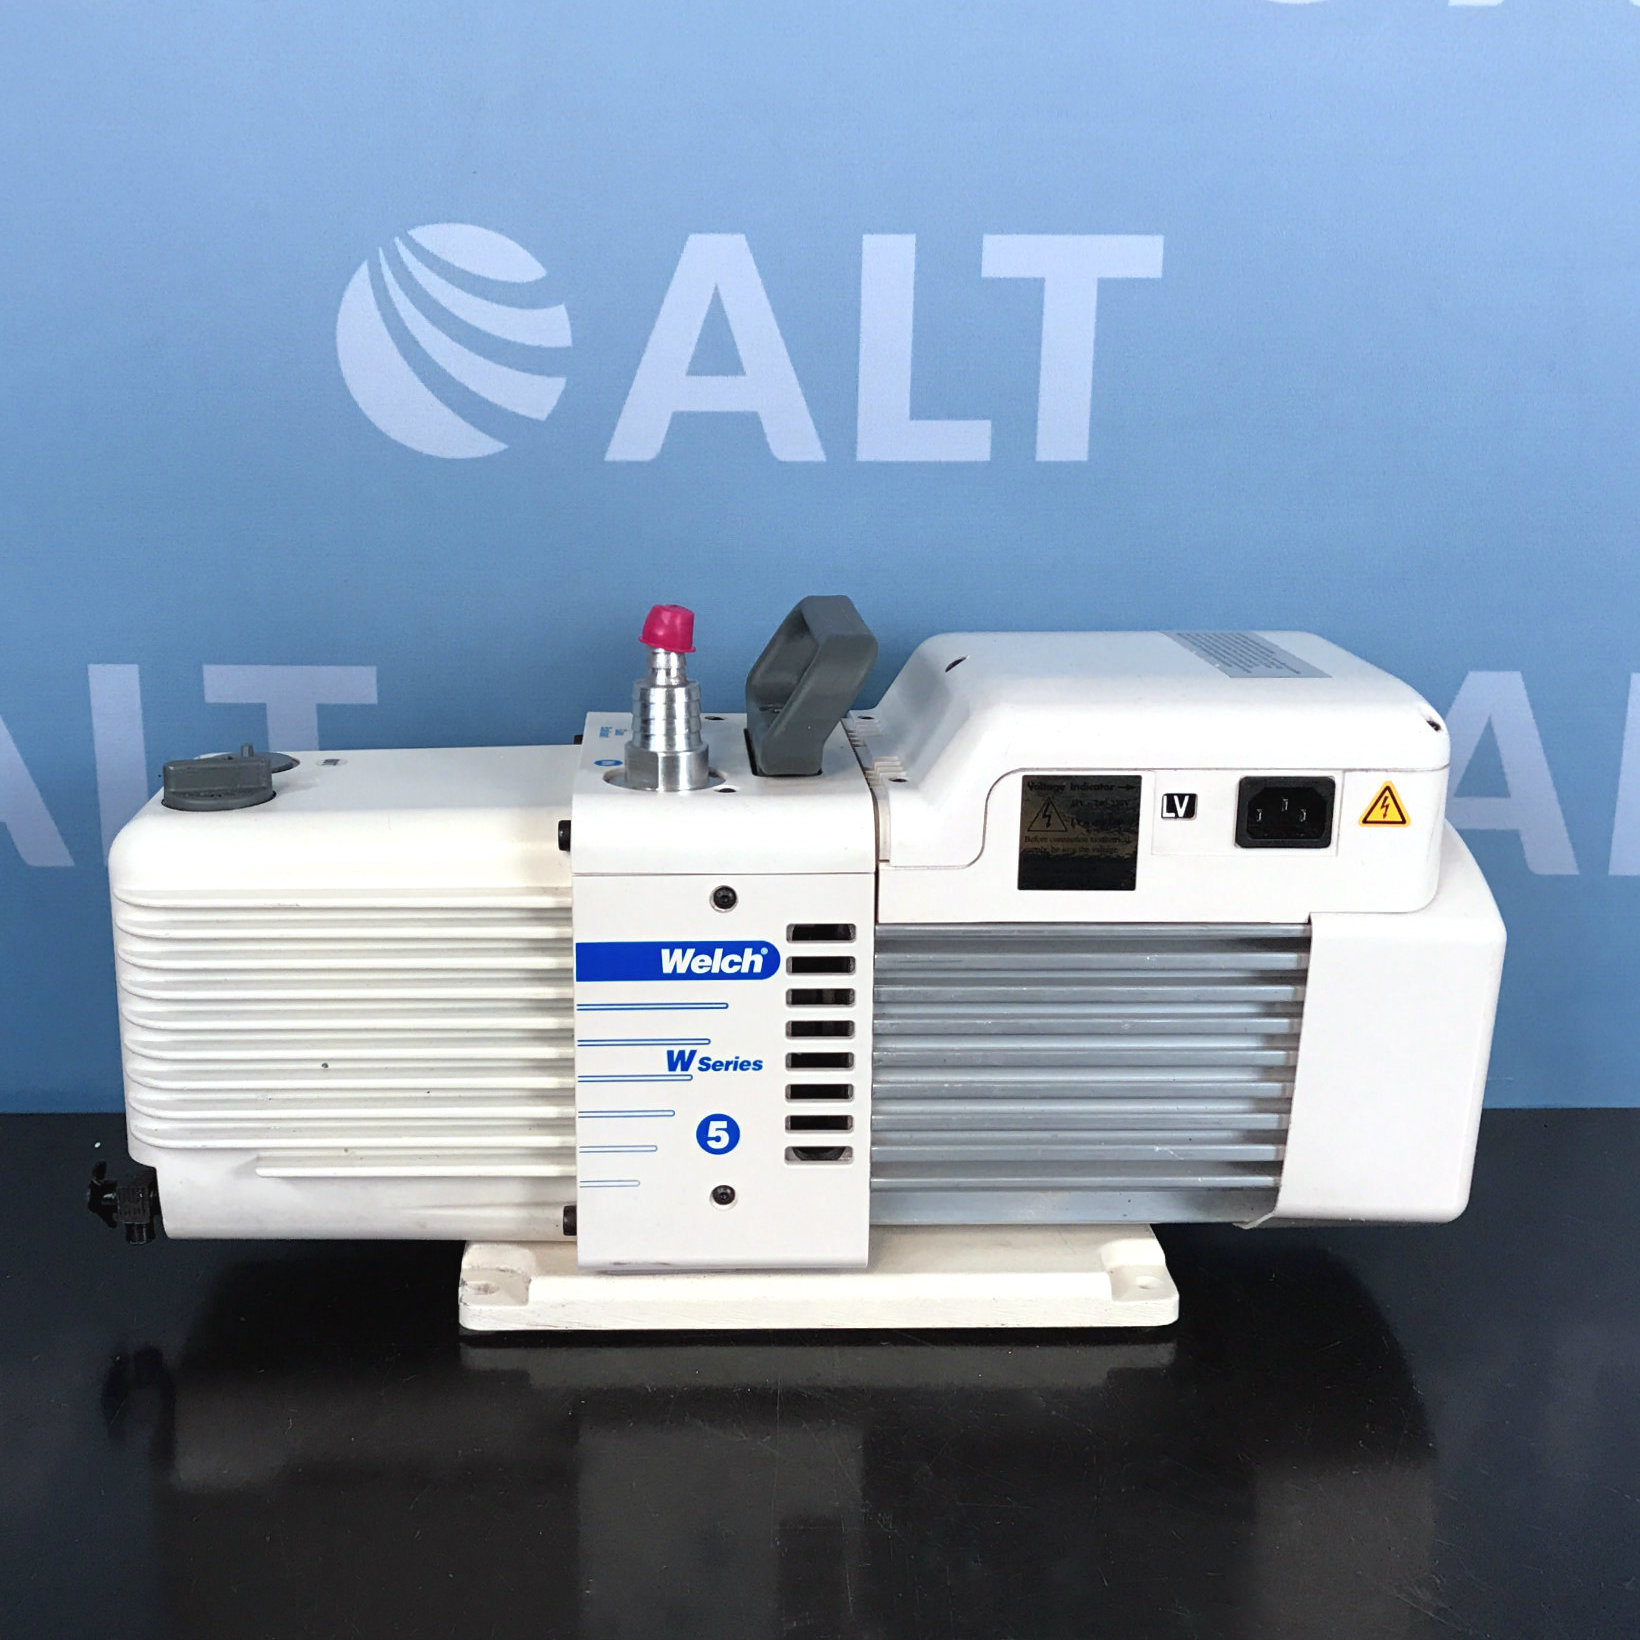 Welch W Series 5 Direct Vacuum Pump Model 8912A Image